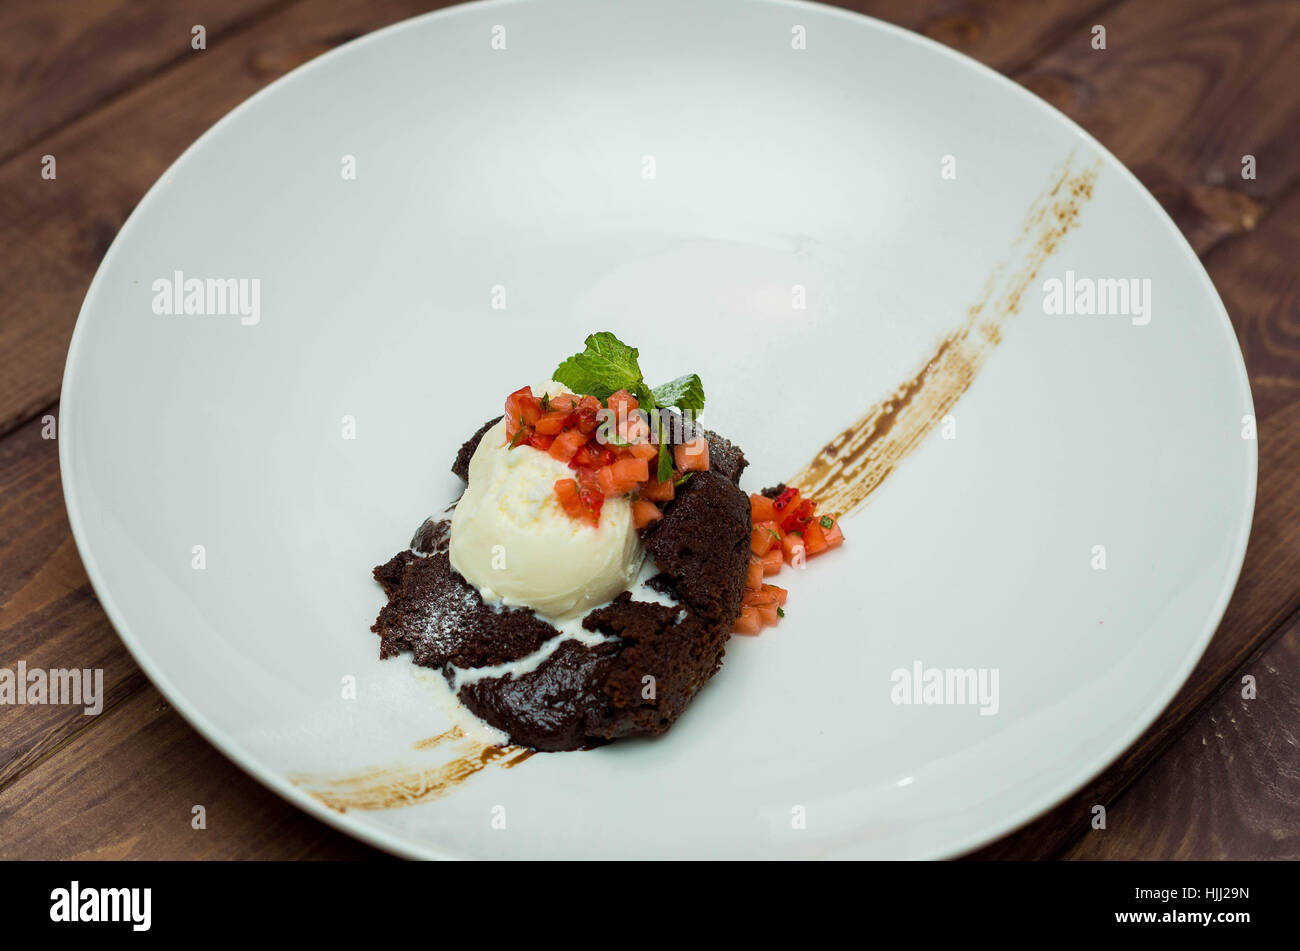 dessert, chocolate fondant with ice cream on a white plate Stock Photo